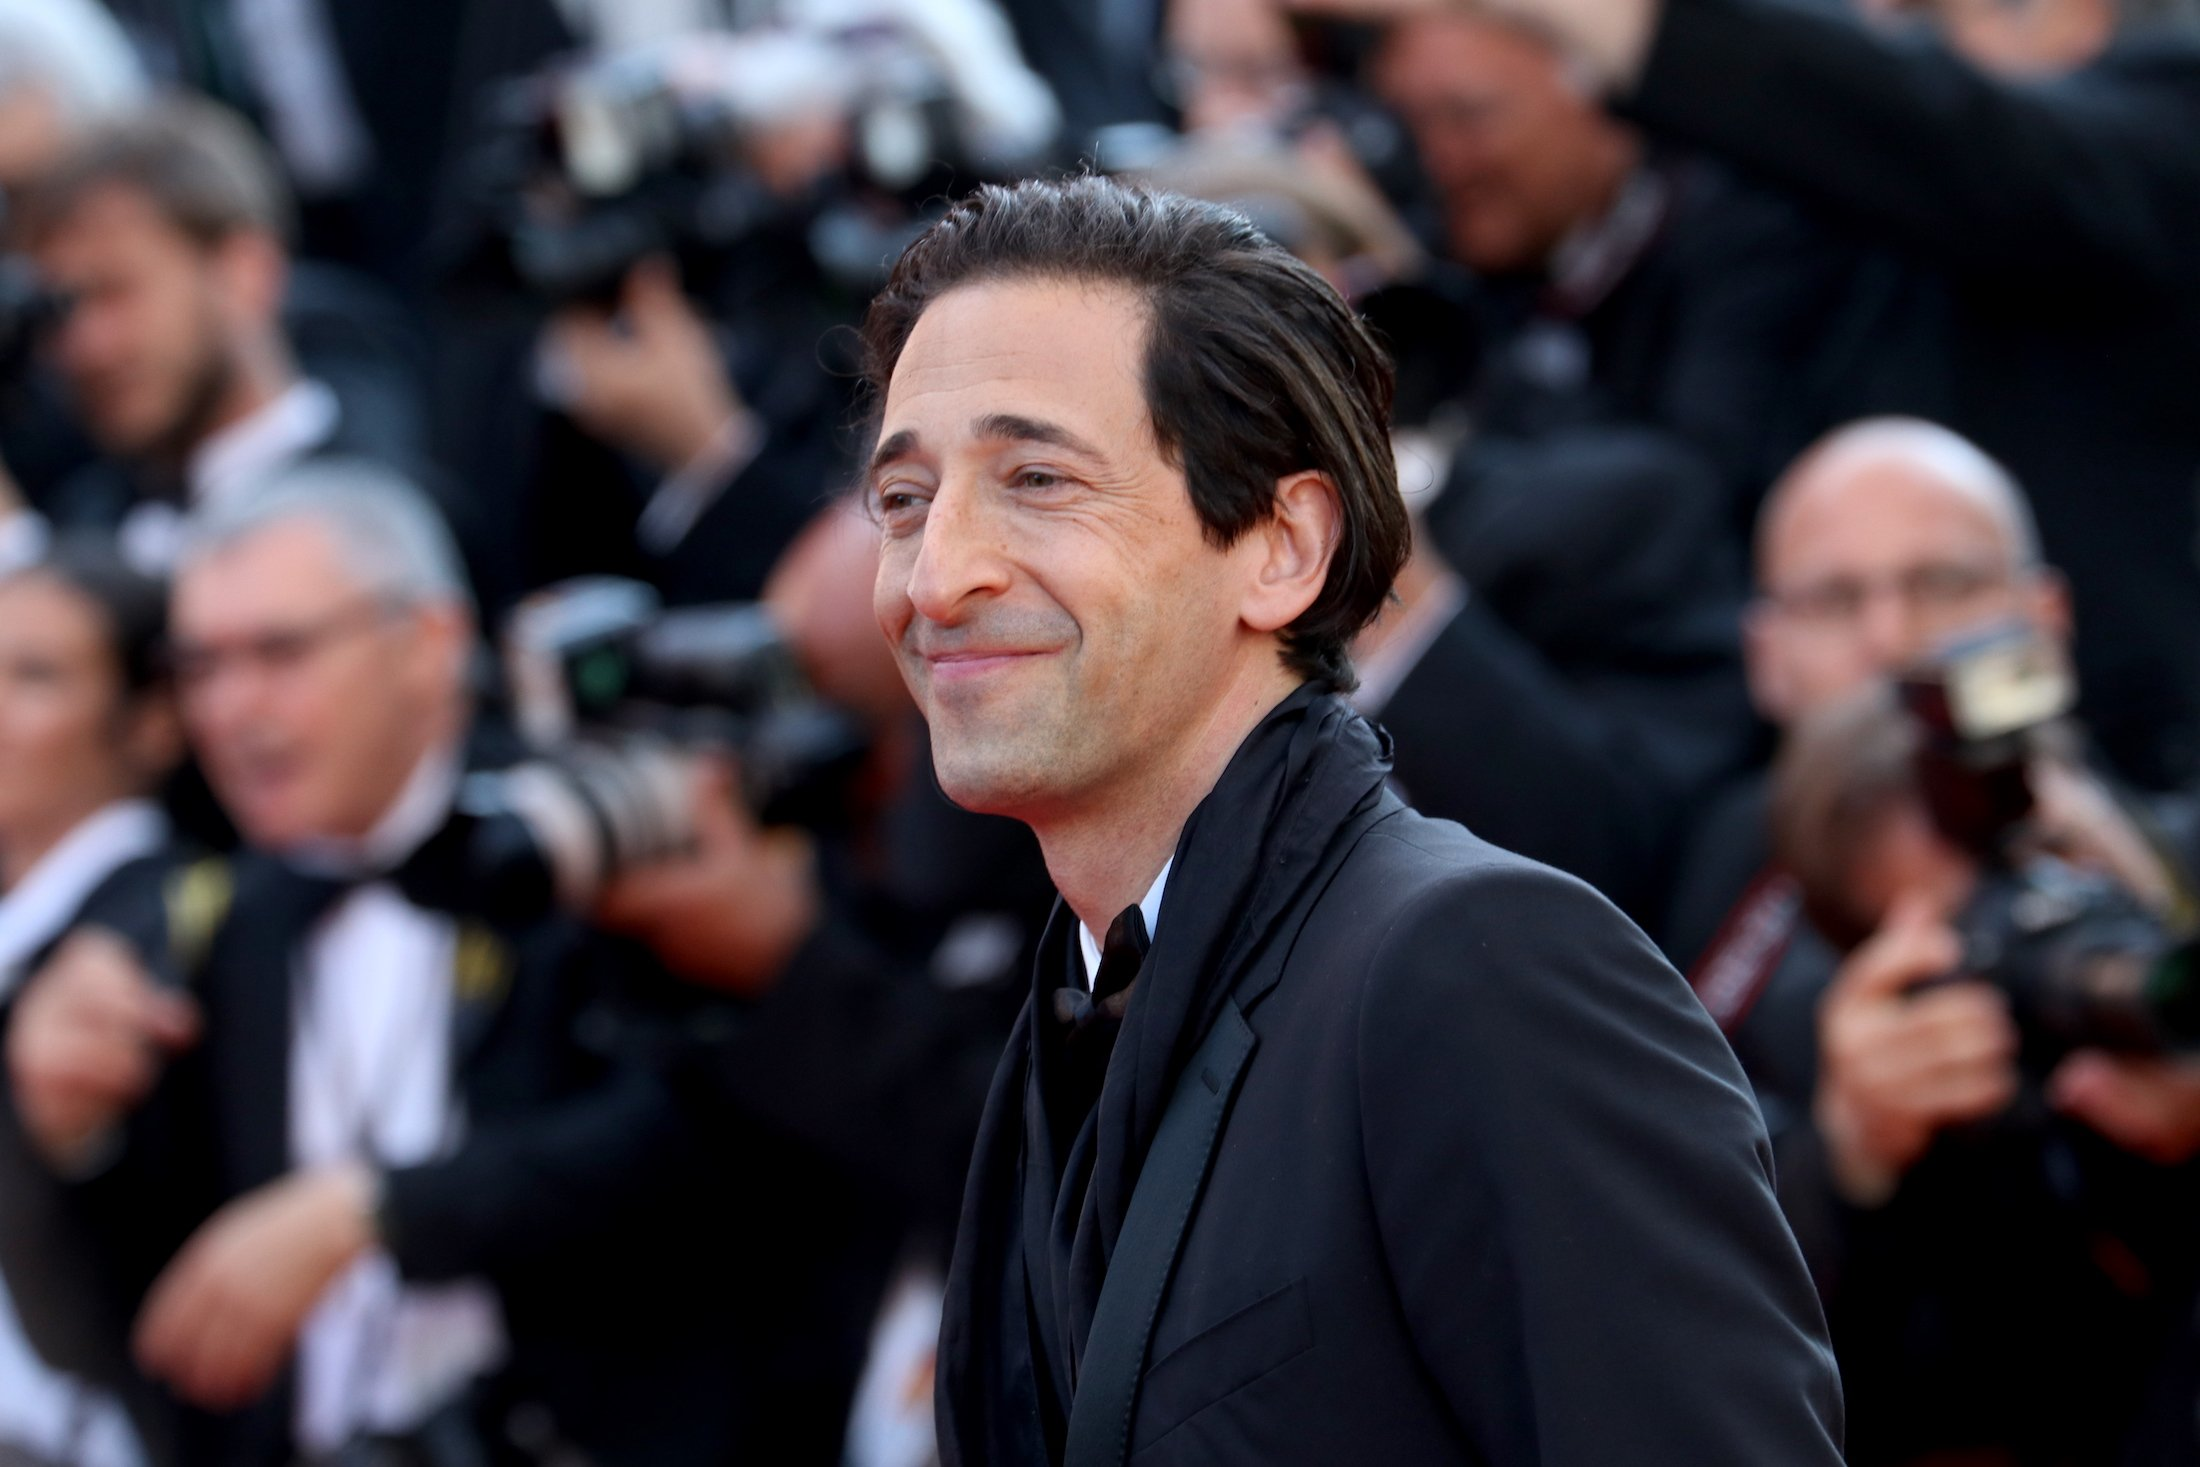 Cannes 2017: Adrien Brody sul red carpet di Based on a True Story